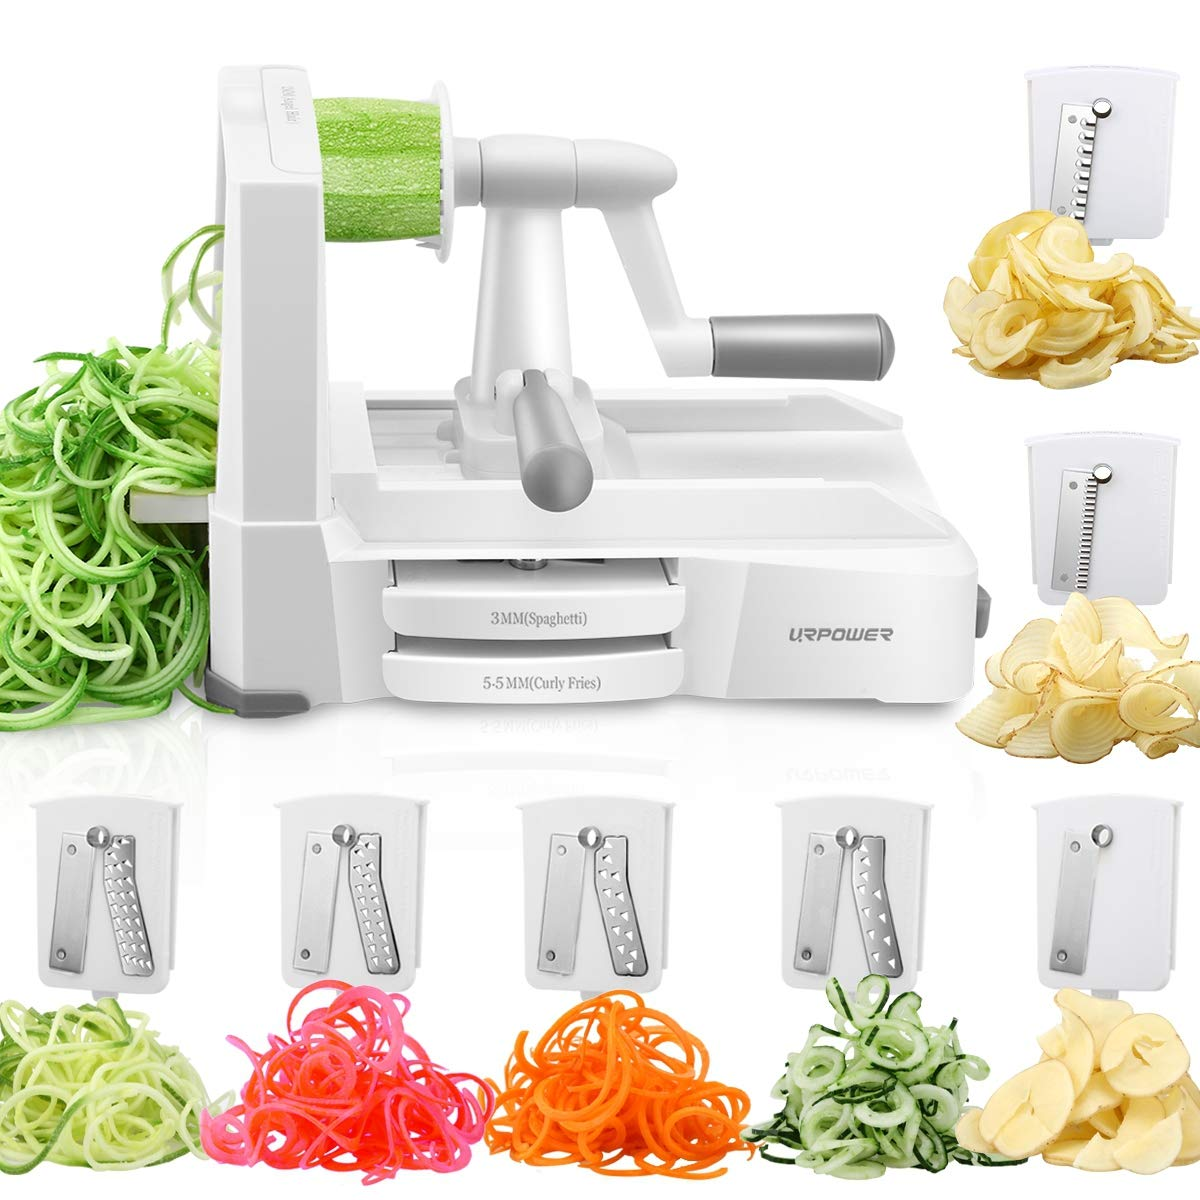 URPOWER Spiralizer Vegetable Slicer